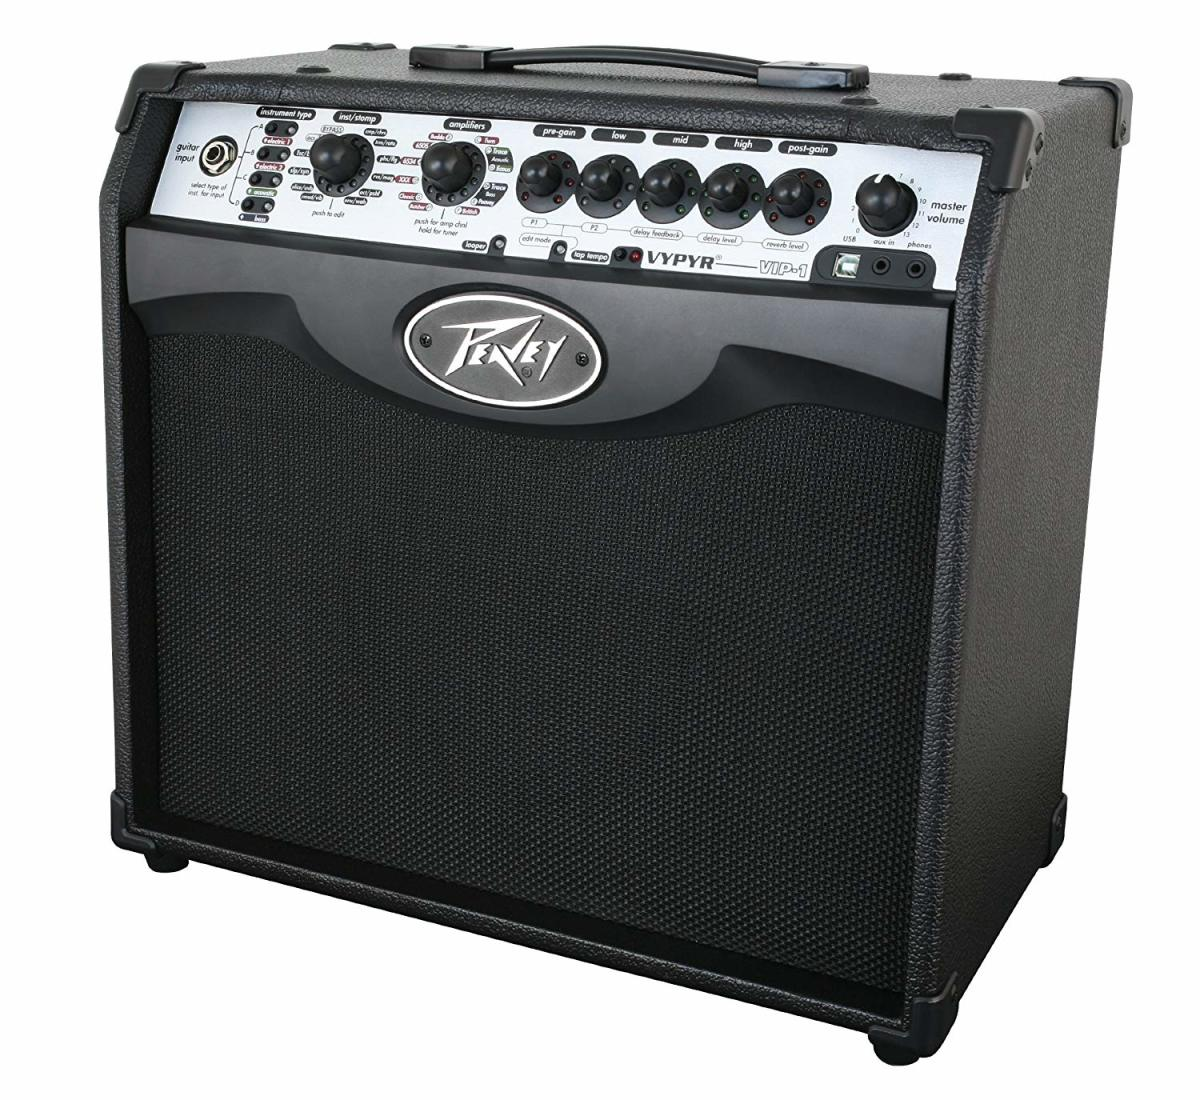 The Peavey Vypyr VIP 1 is one of the best guitar amps under $200